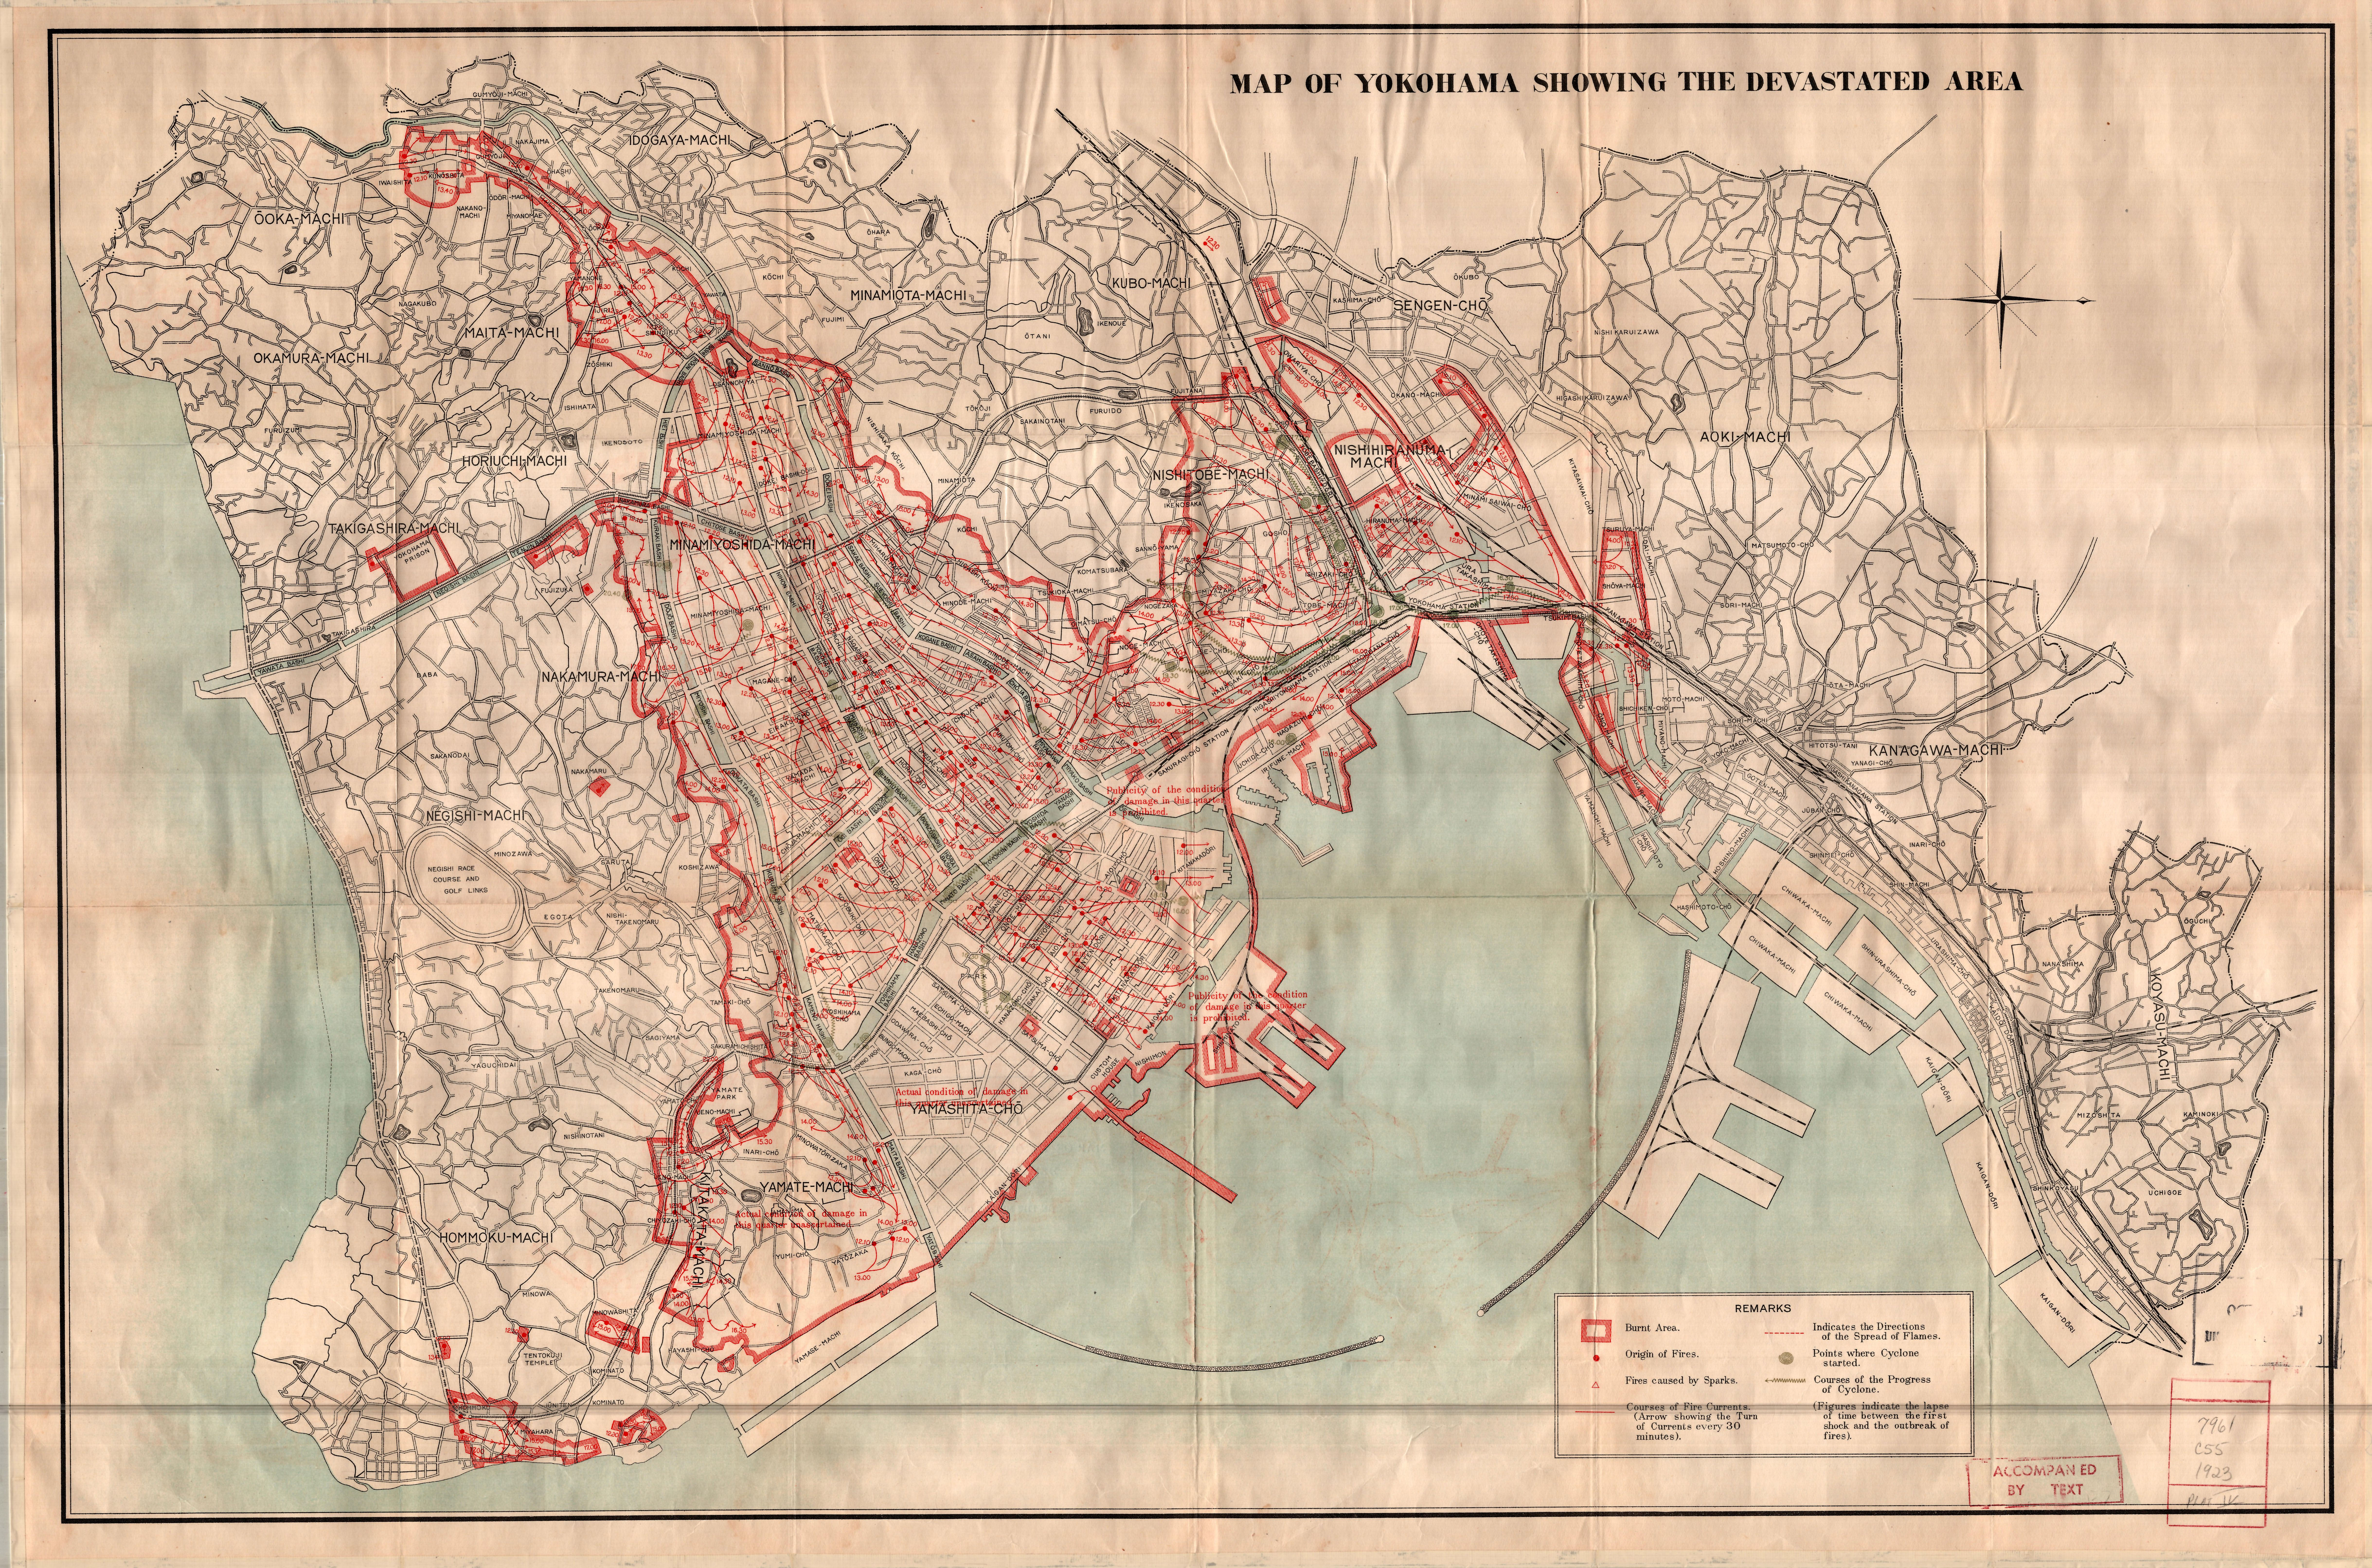 Companion Maps And Diagrams To The Great Earthquake Of In - Japan map yokohama tokyo